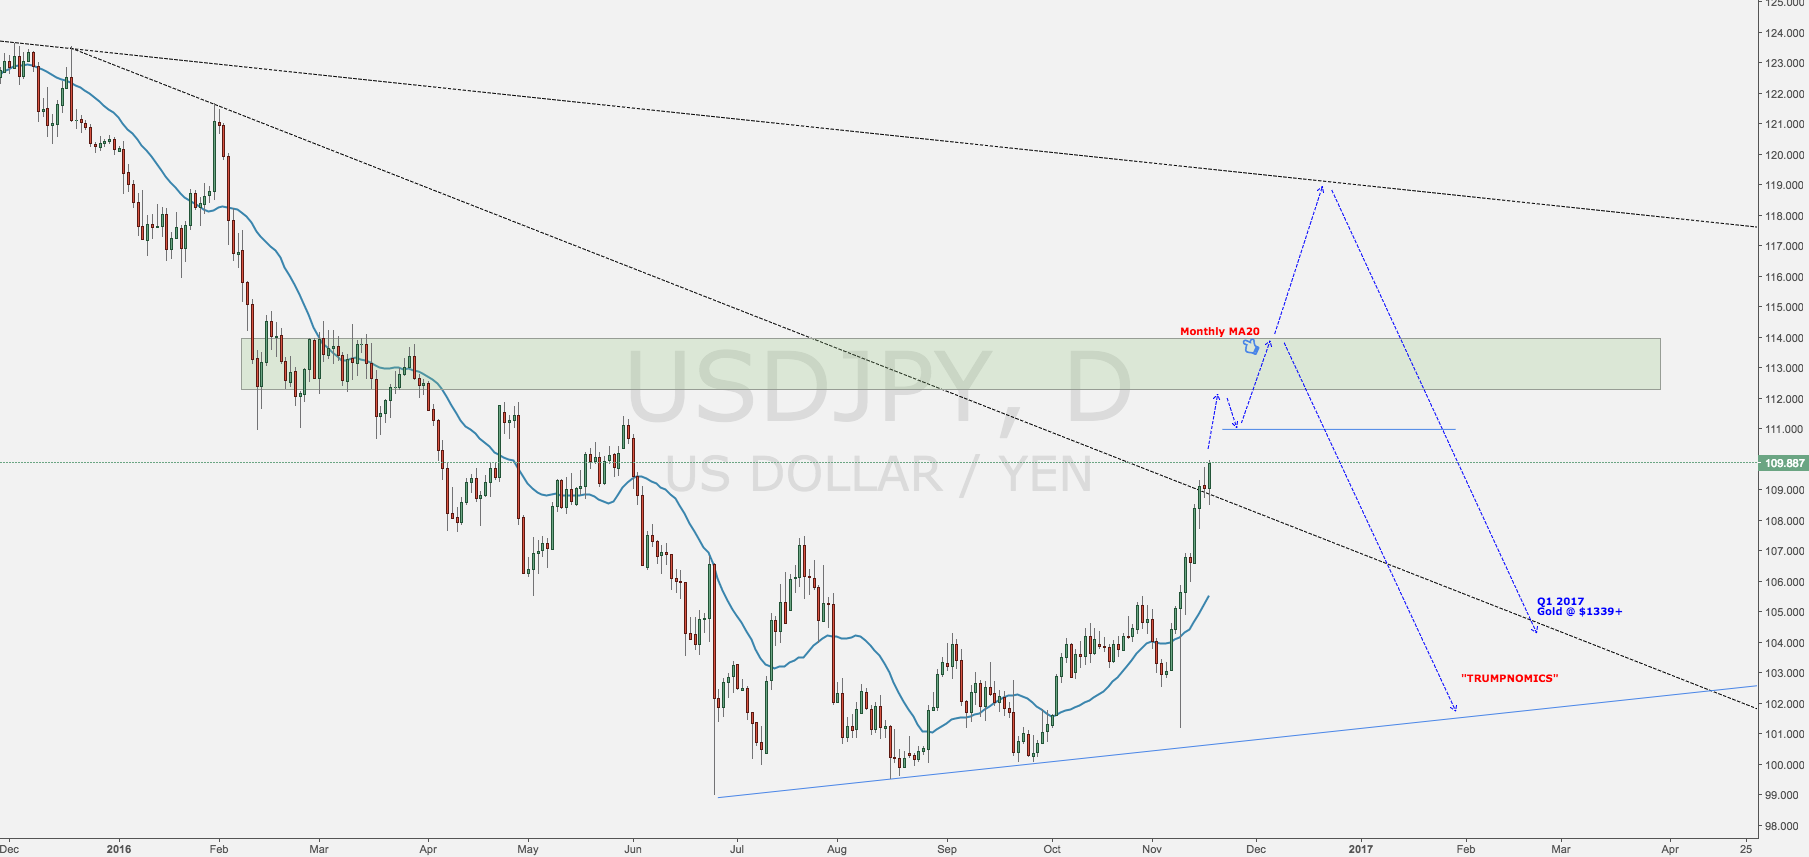 USDJPY Pure Speculation - Gold View